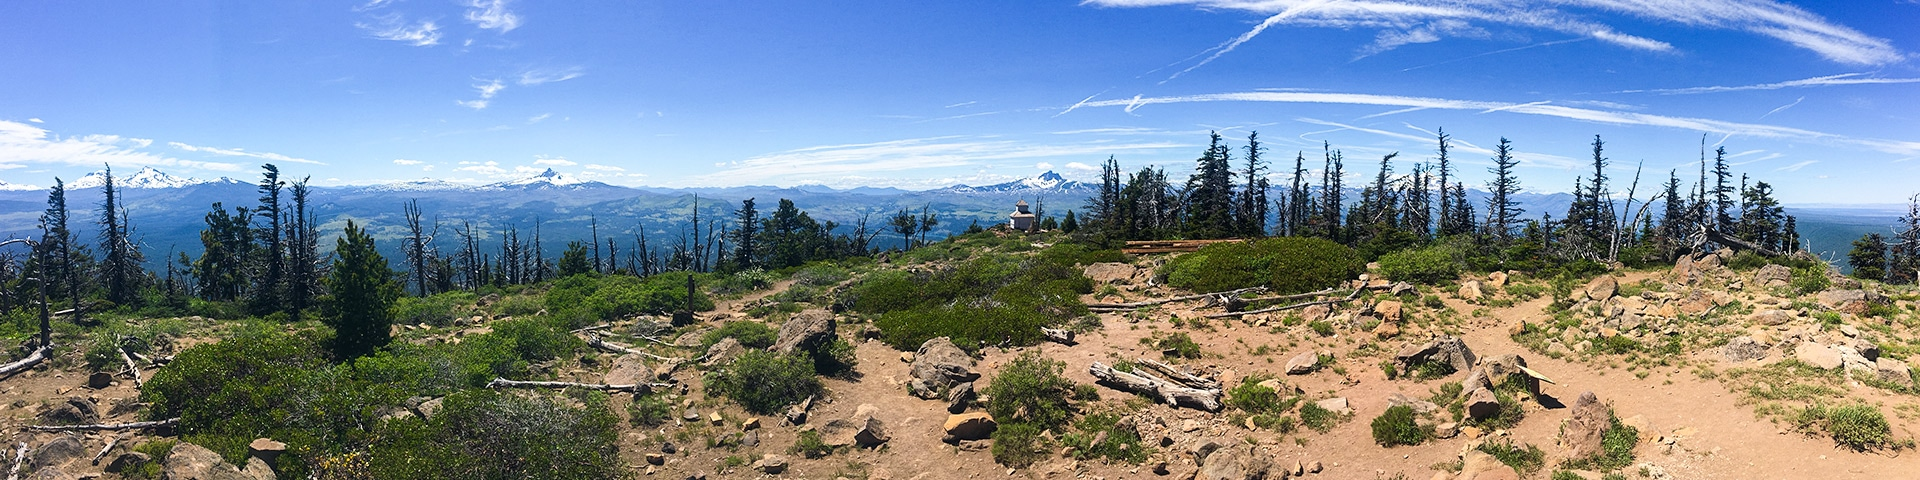 Panorama from the Black Butte hike near Bend, Oregon